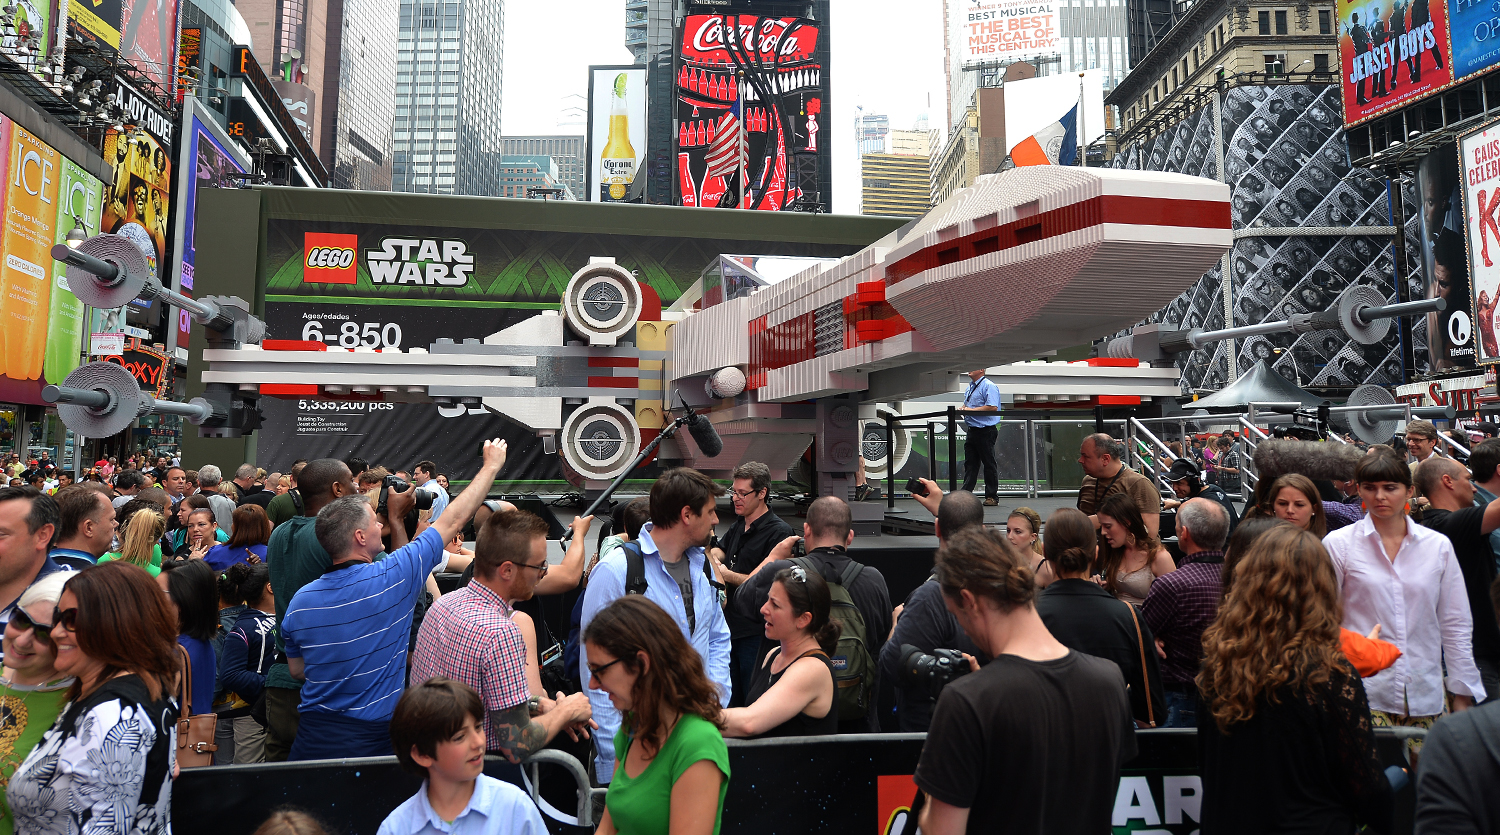 The world's largest LEGO model is on display at Times Square in New York, May 23, 2013. Made of 5,335,200 LEGO bricks and based on the X-wing starfigh...